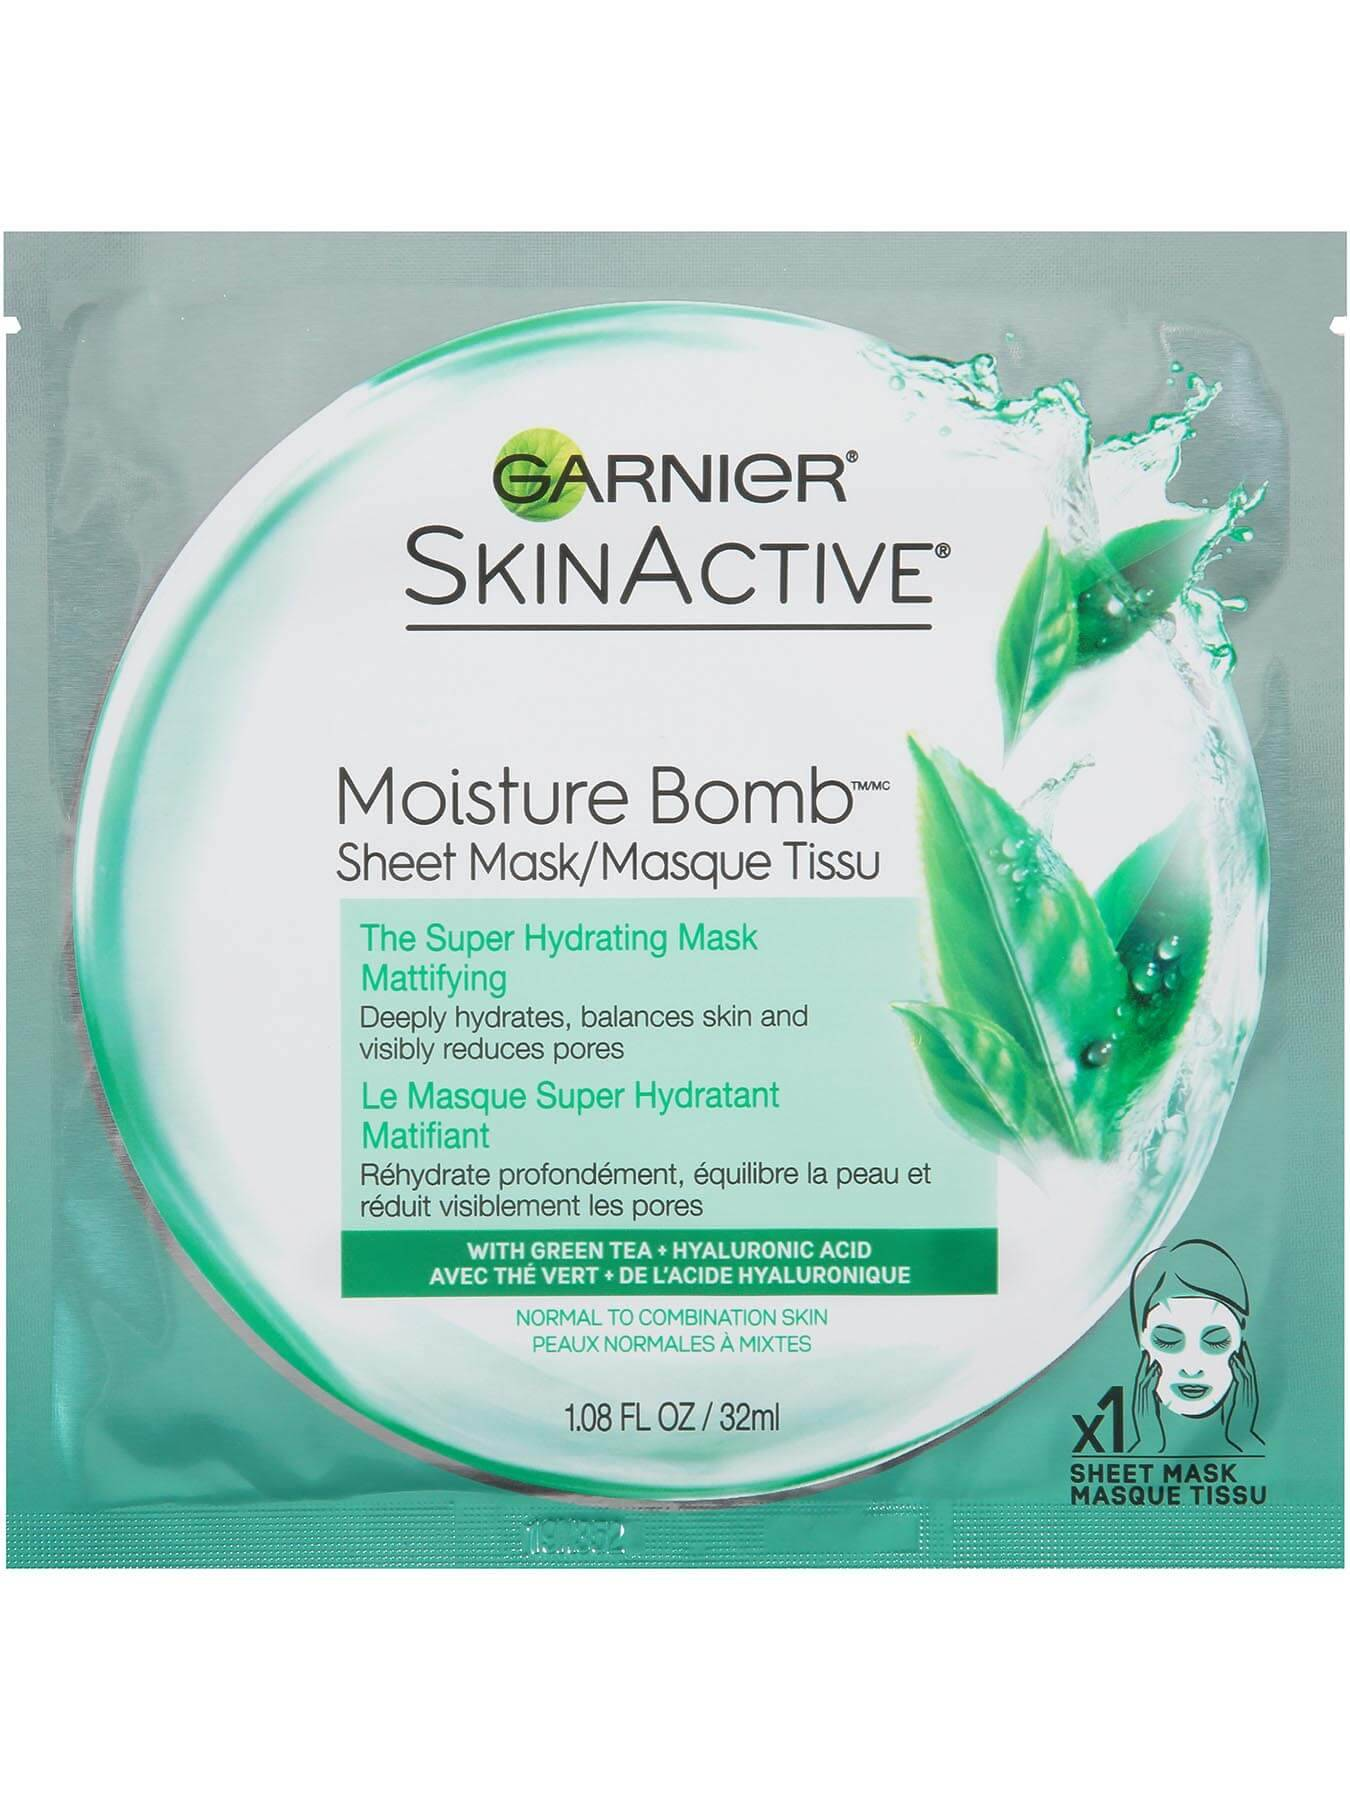 Garnier SkinActive Moisture Bomb The Super Hydrating Sheet Mask - Skin Care - Product for normal to combination skin